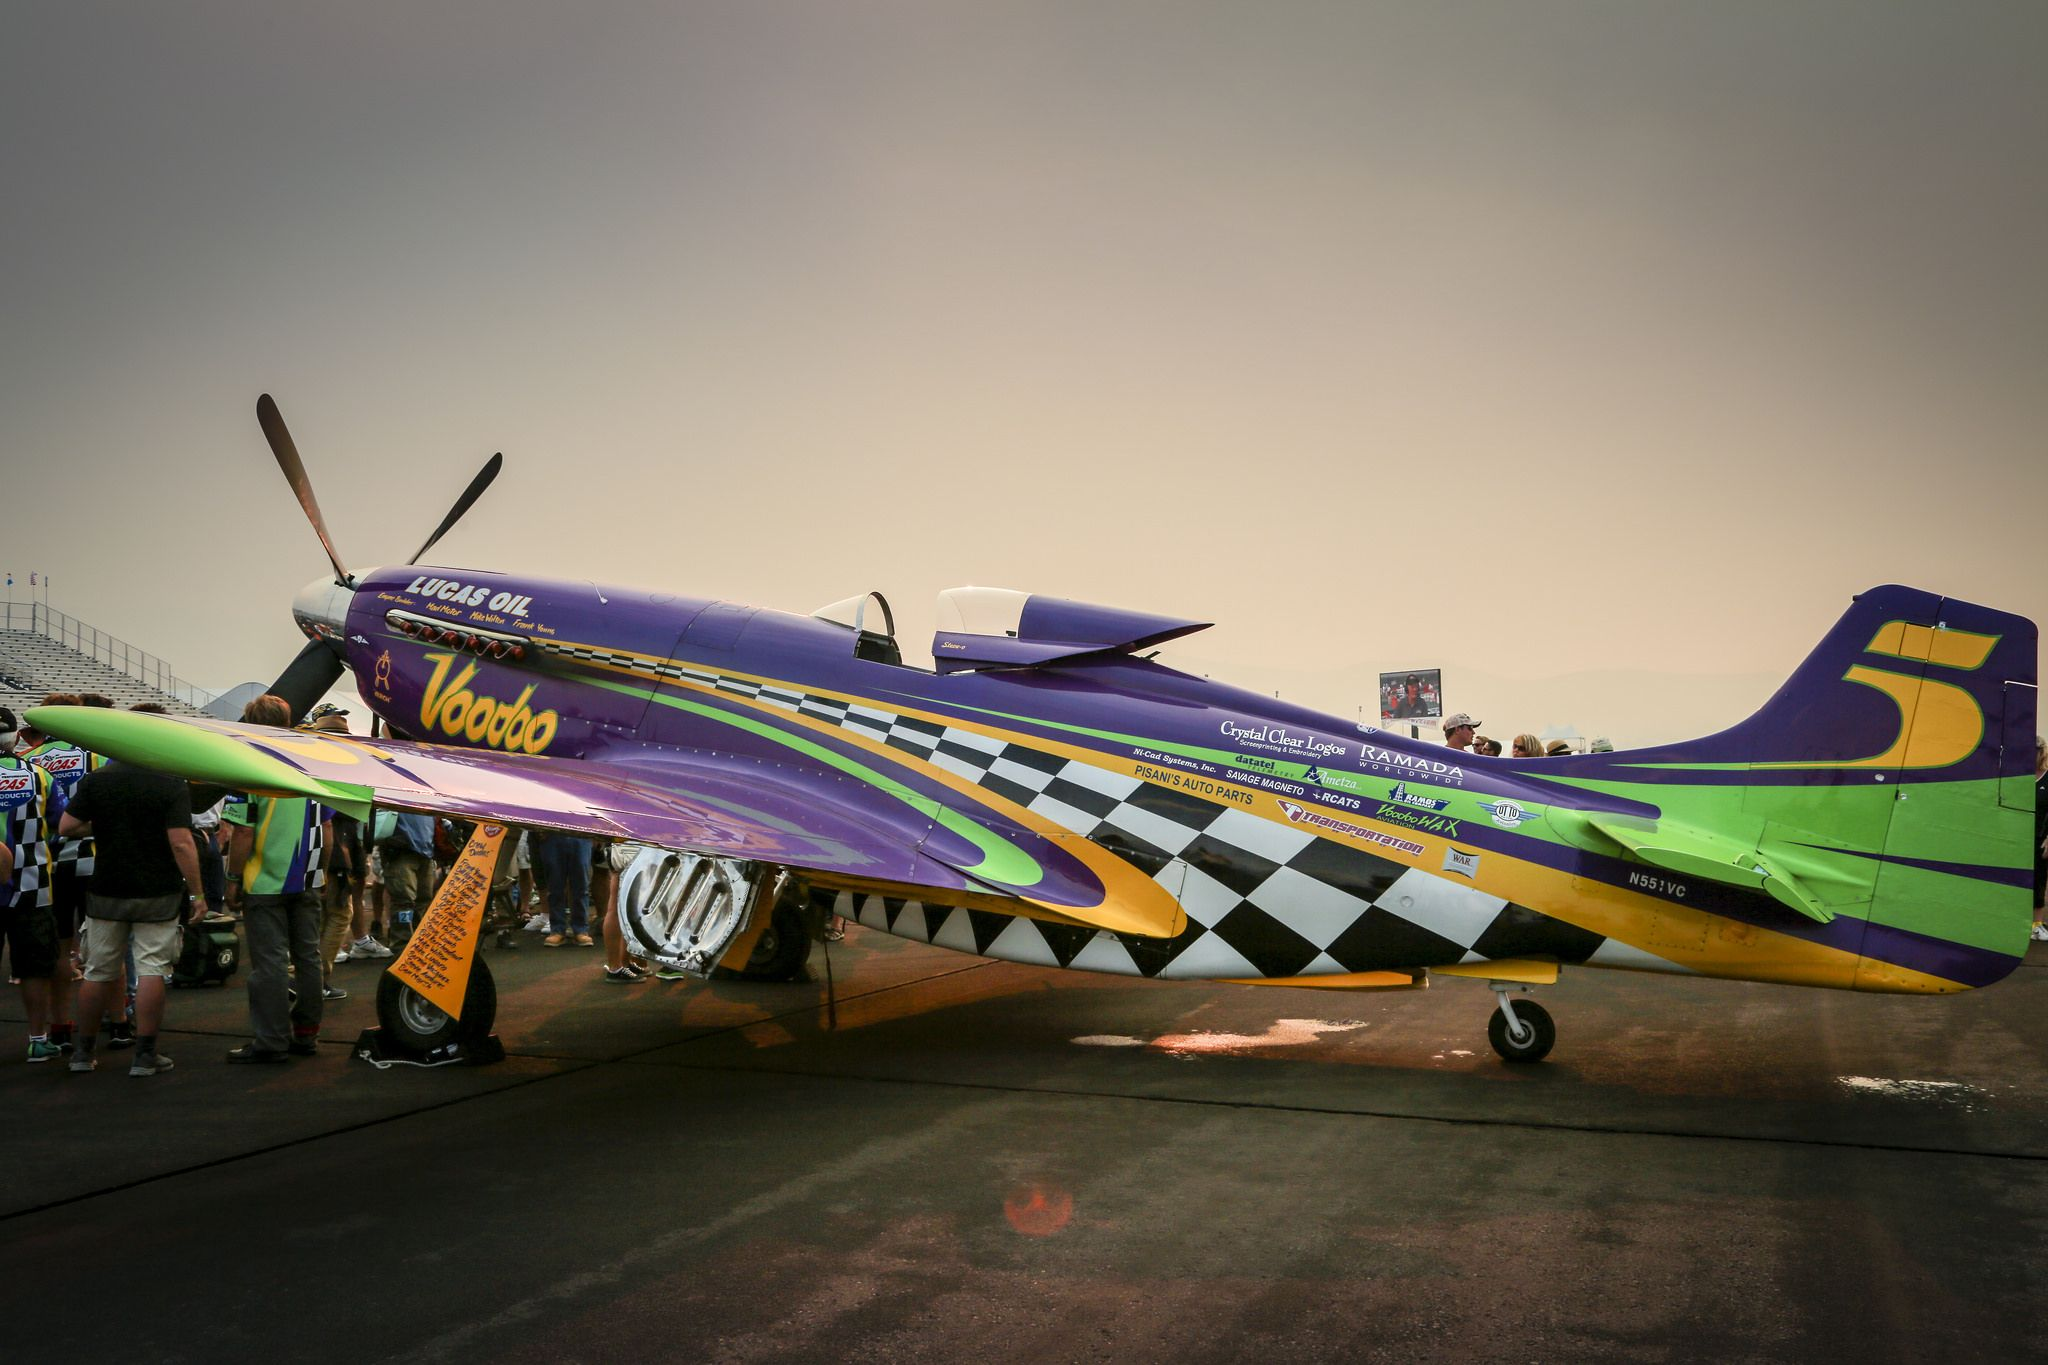 Reno Air Races 2014